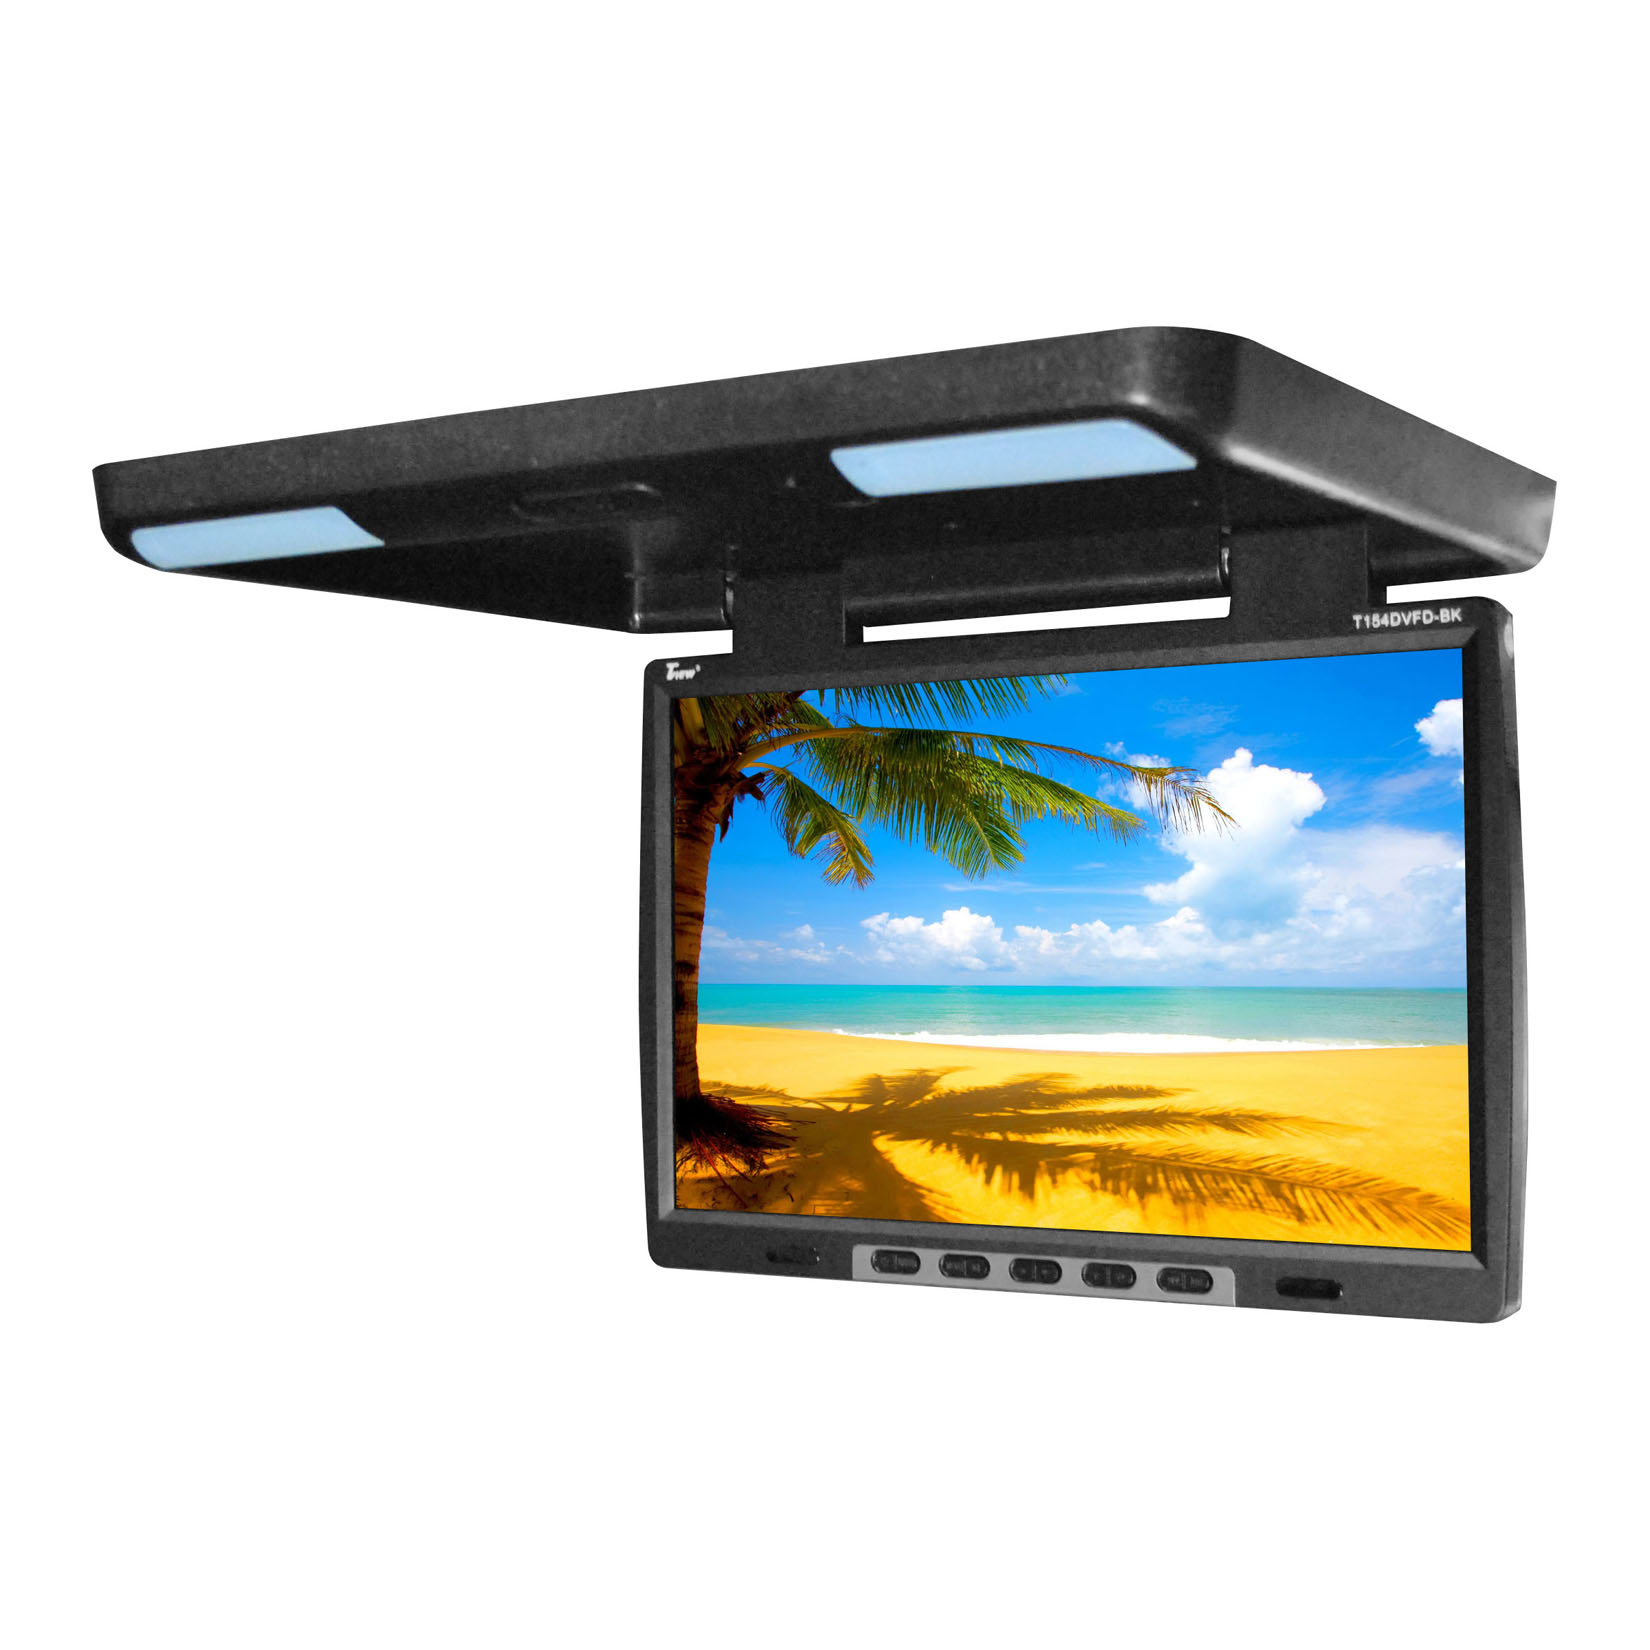 "Tview T154DVFDBK 15.4"" Flip Down Monitor With Built In Dvd Ir/fm Trans Black"